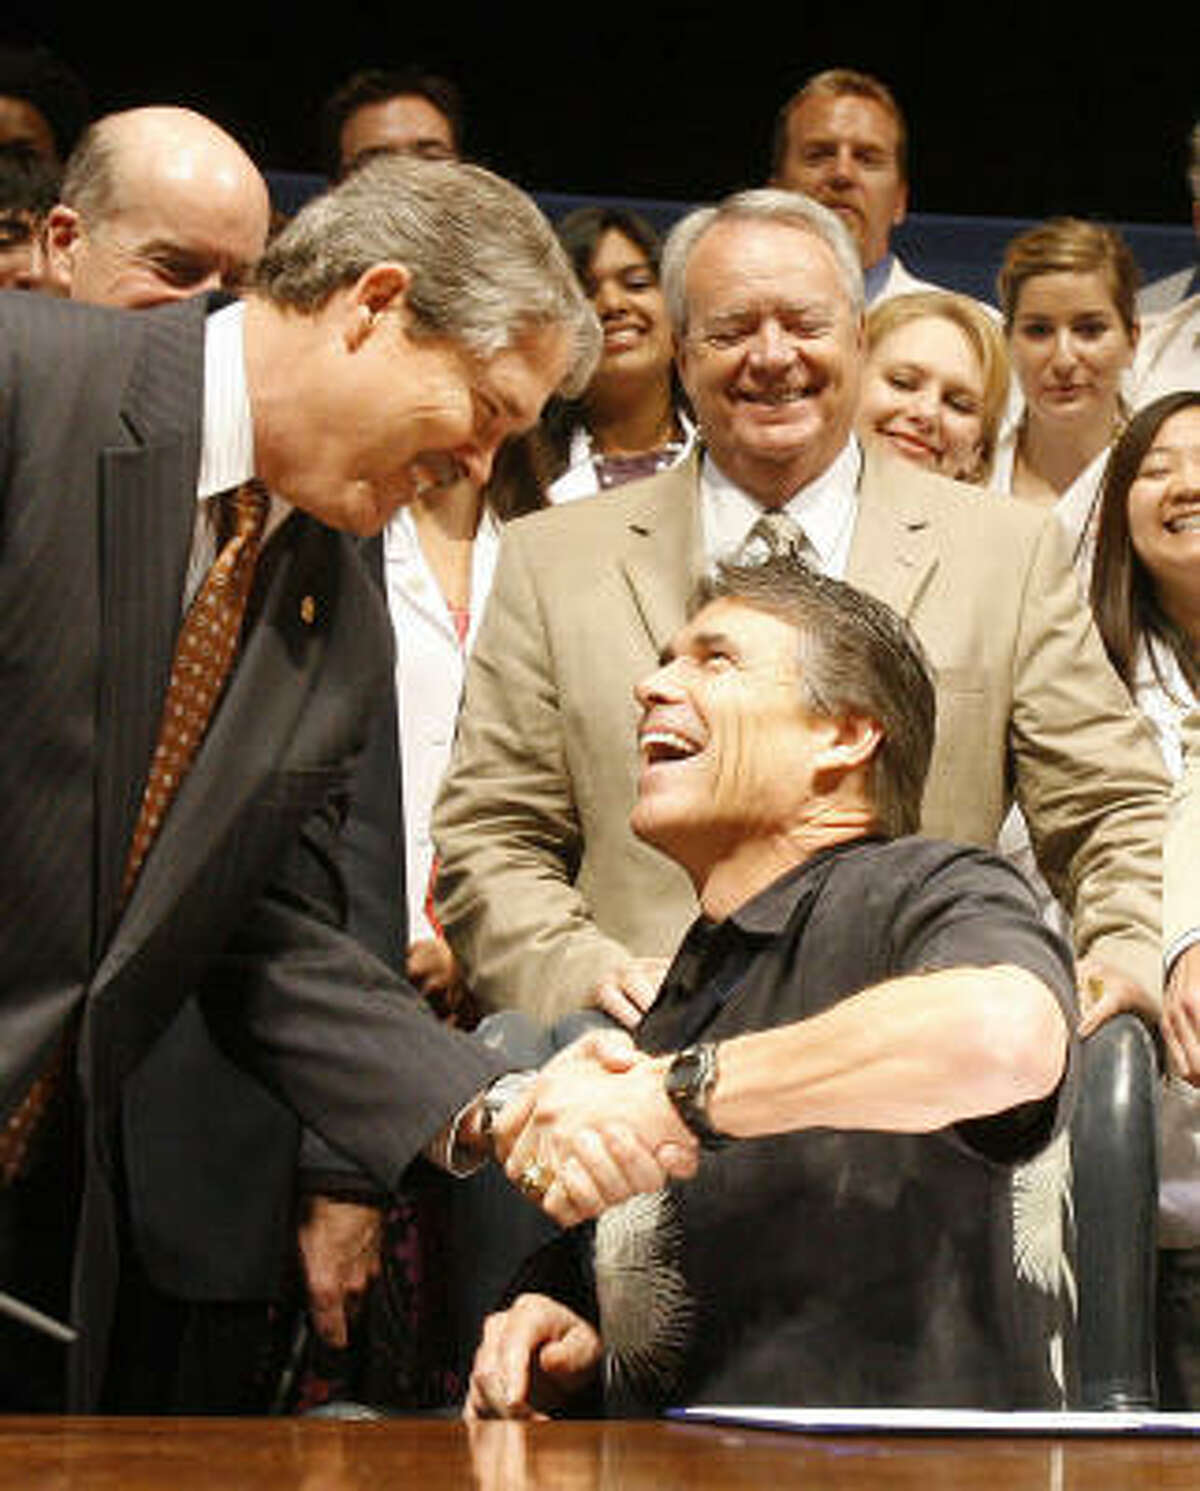 Among measures winning Gov. Rick Perry's approval were House Bills 4586 and 4409. The bills help the University of Texas Medical Branch recover from Hurricane Ike and reform the Texas Windstorm Insurance Association. Perry is shown celebrating with supporters at a bill-signing at UTMB on Friday.